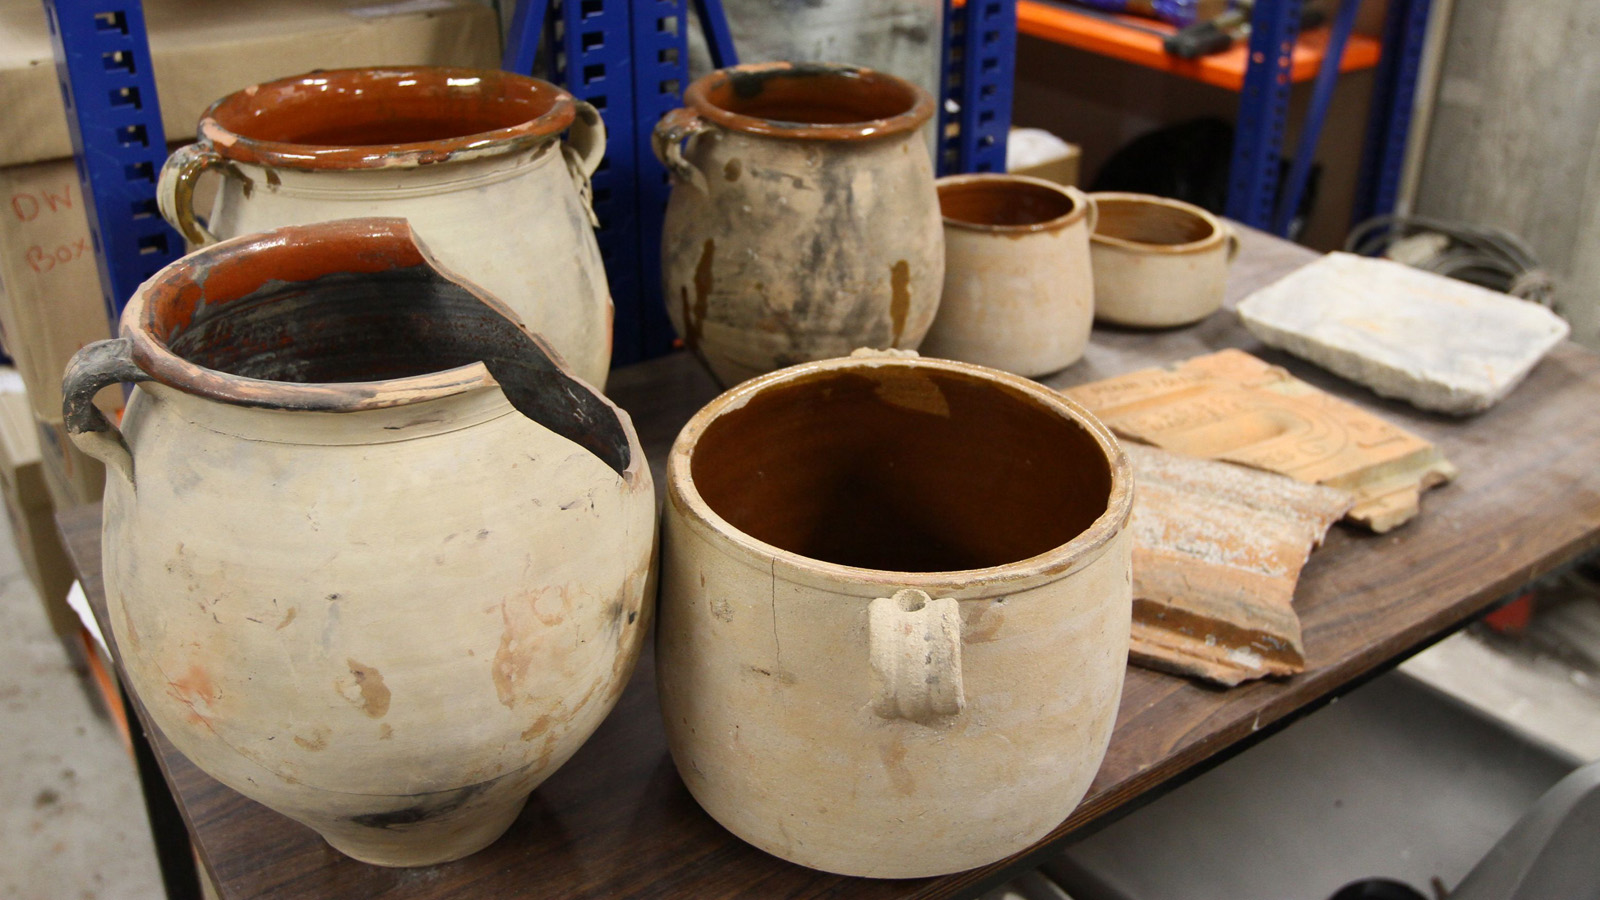 Ceramics helped researchers conclude the ship likely sank in the late 1800s. Photo: University of Haifa